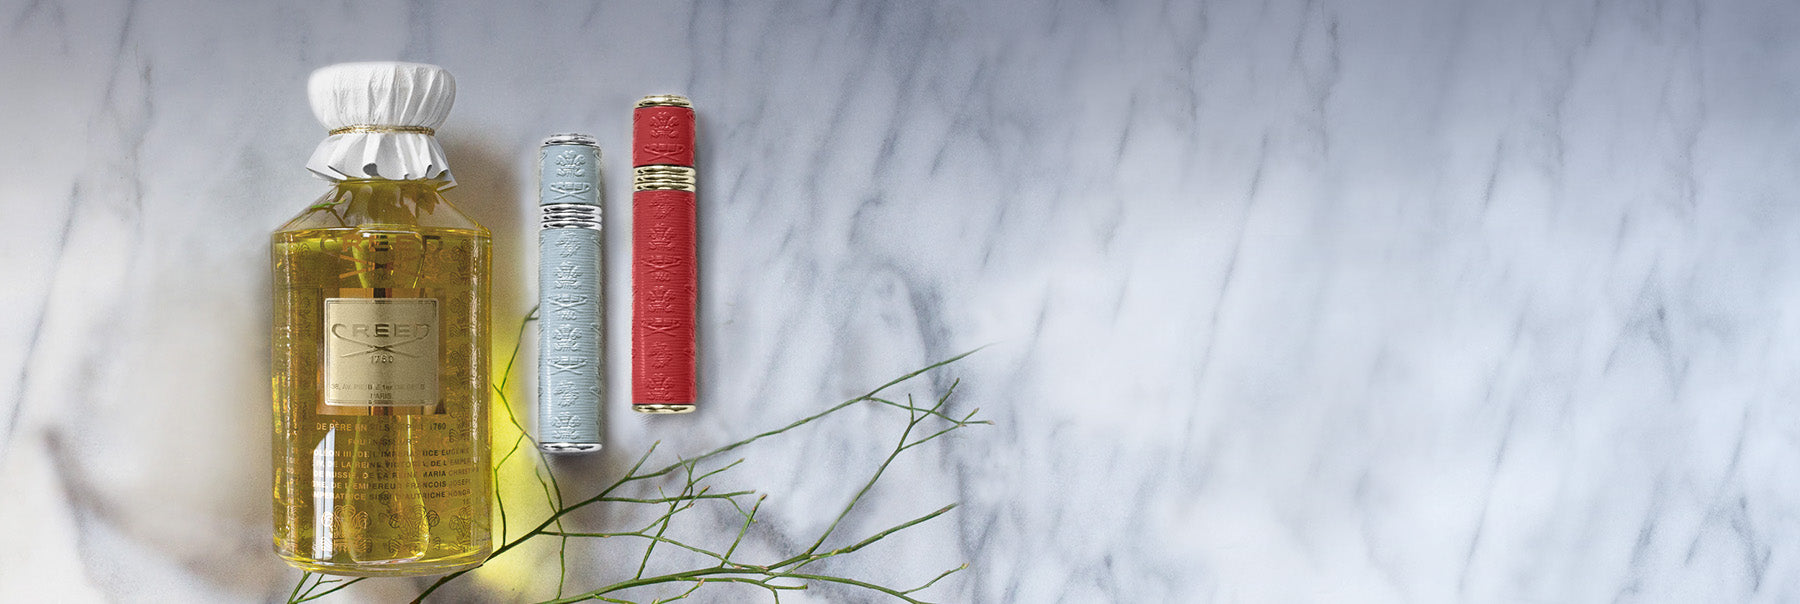 A Flacon and a red atomizer and grey atomizer against a marble backdrop